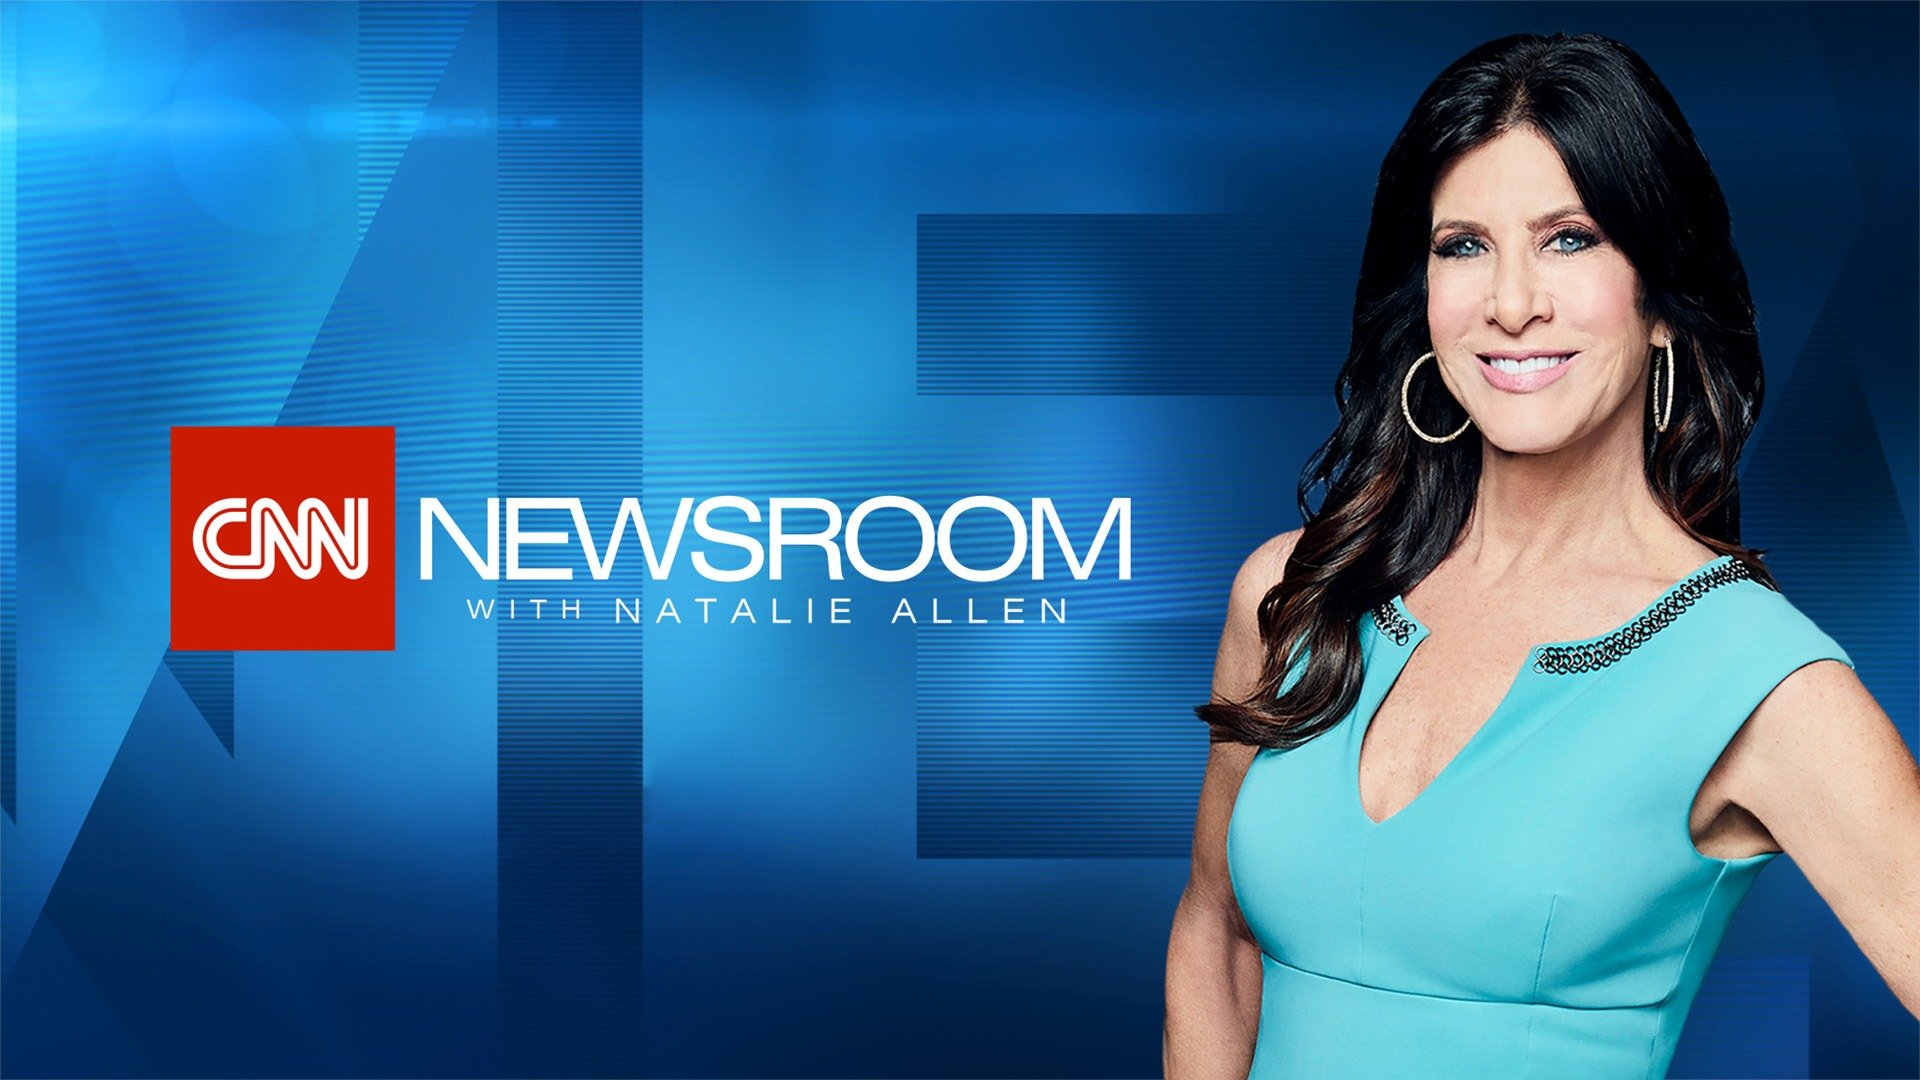 CNN Newsroom With Natalie Allen